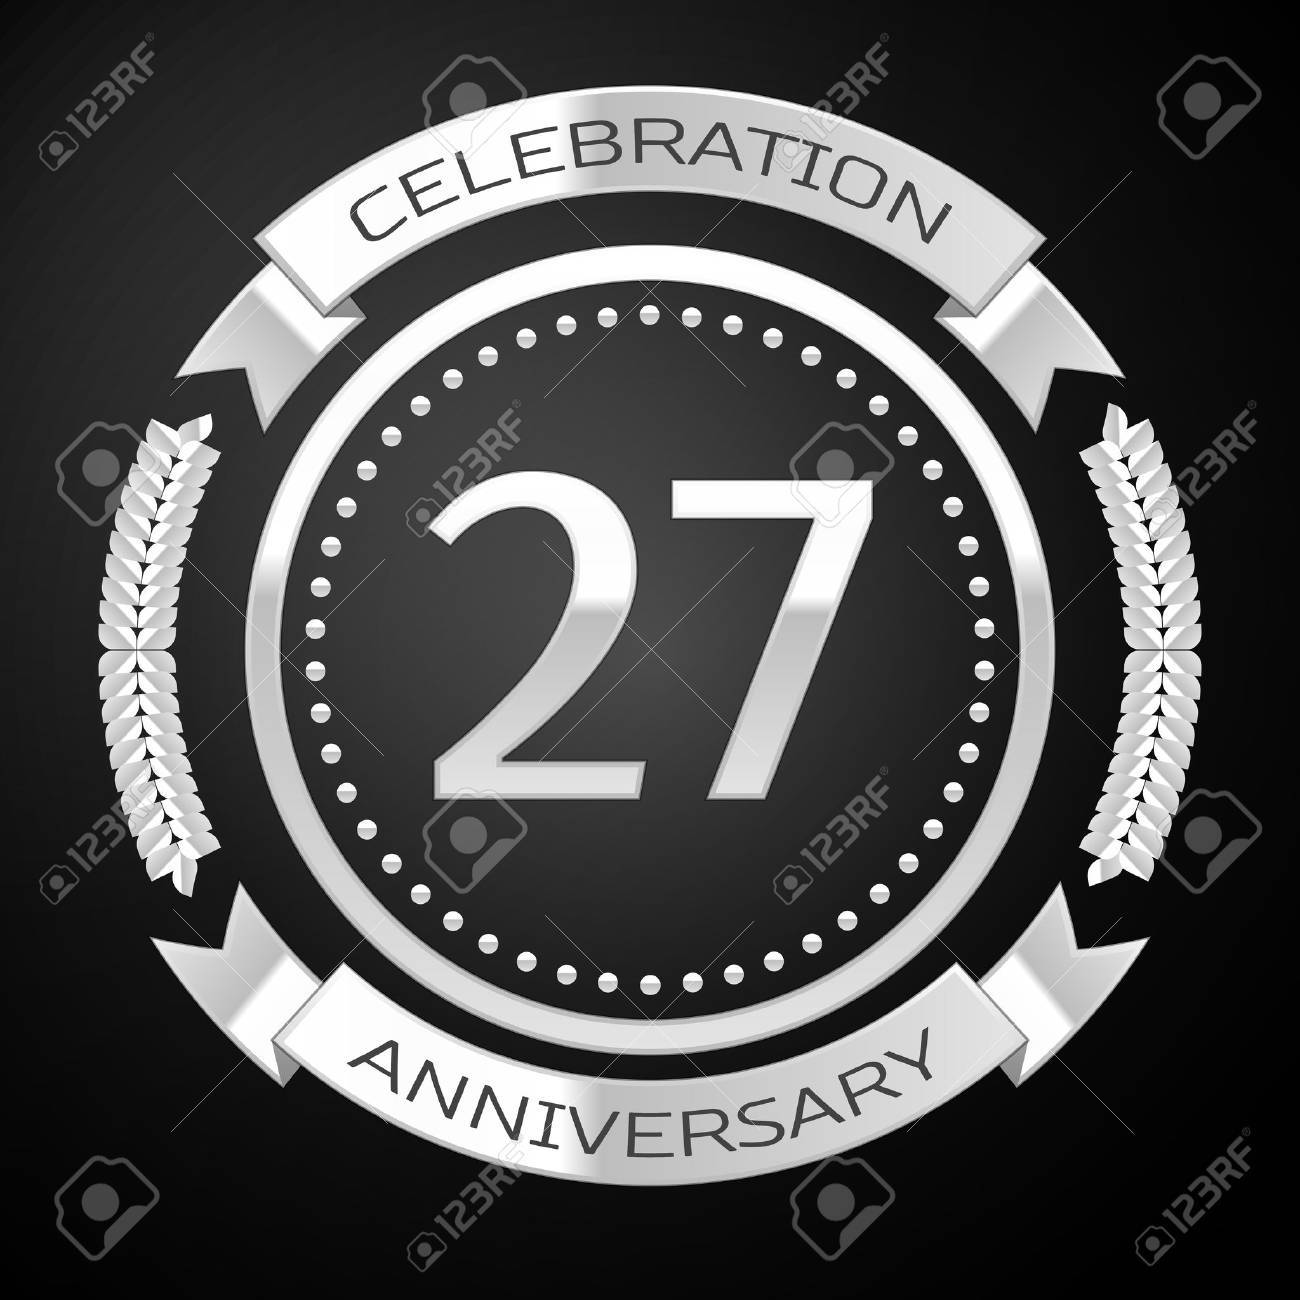 Twenty seven years anniversary celebration with silver ring and ribbon on black background. Vector illustration - 68889970